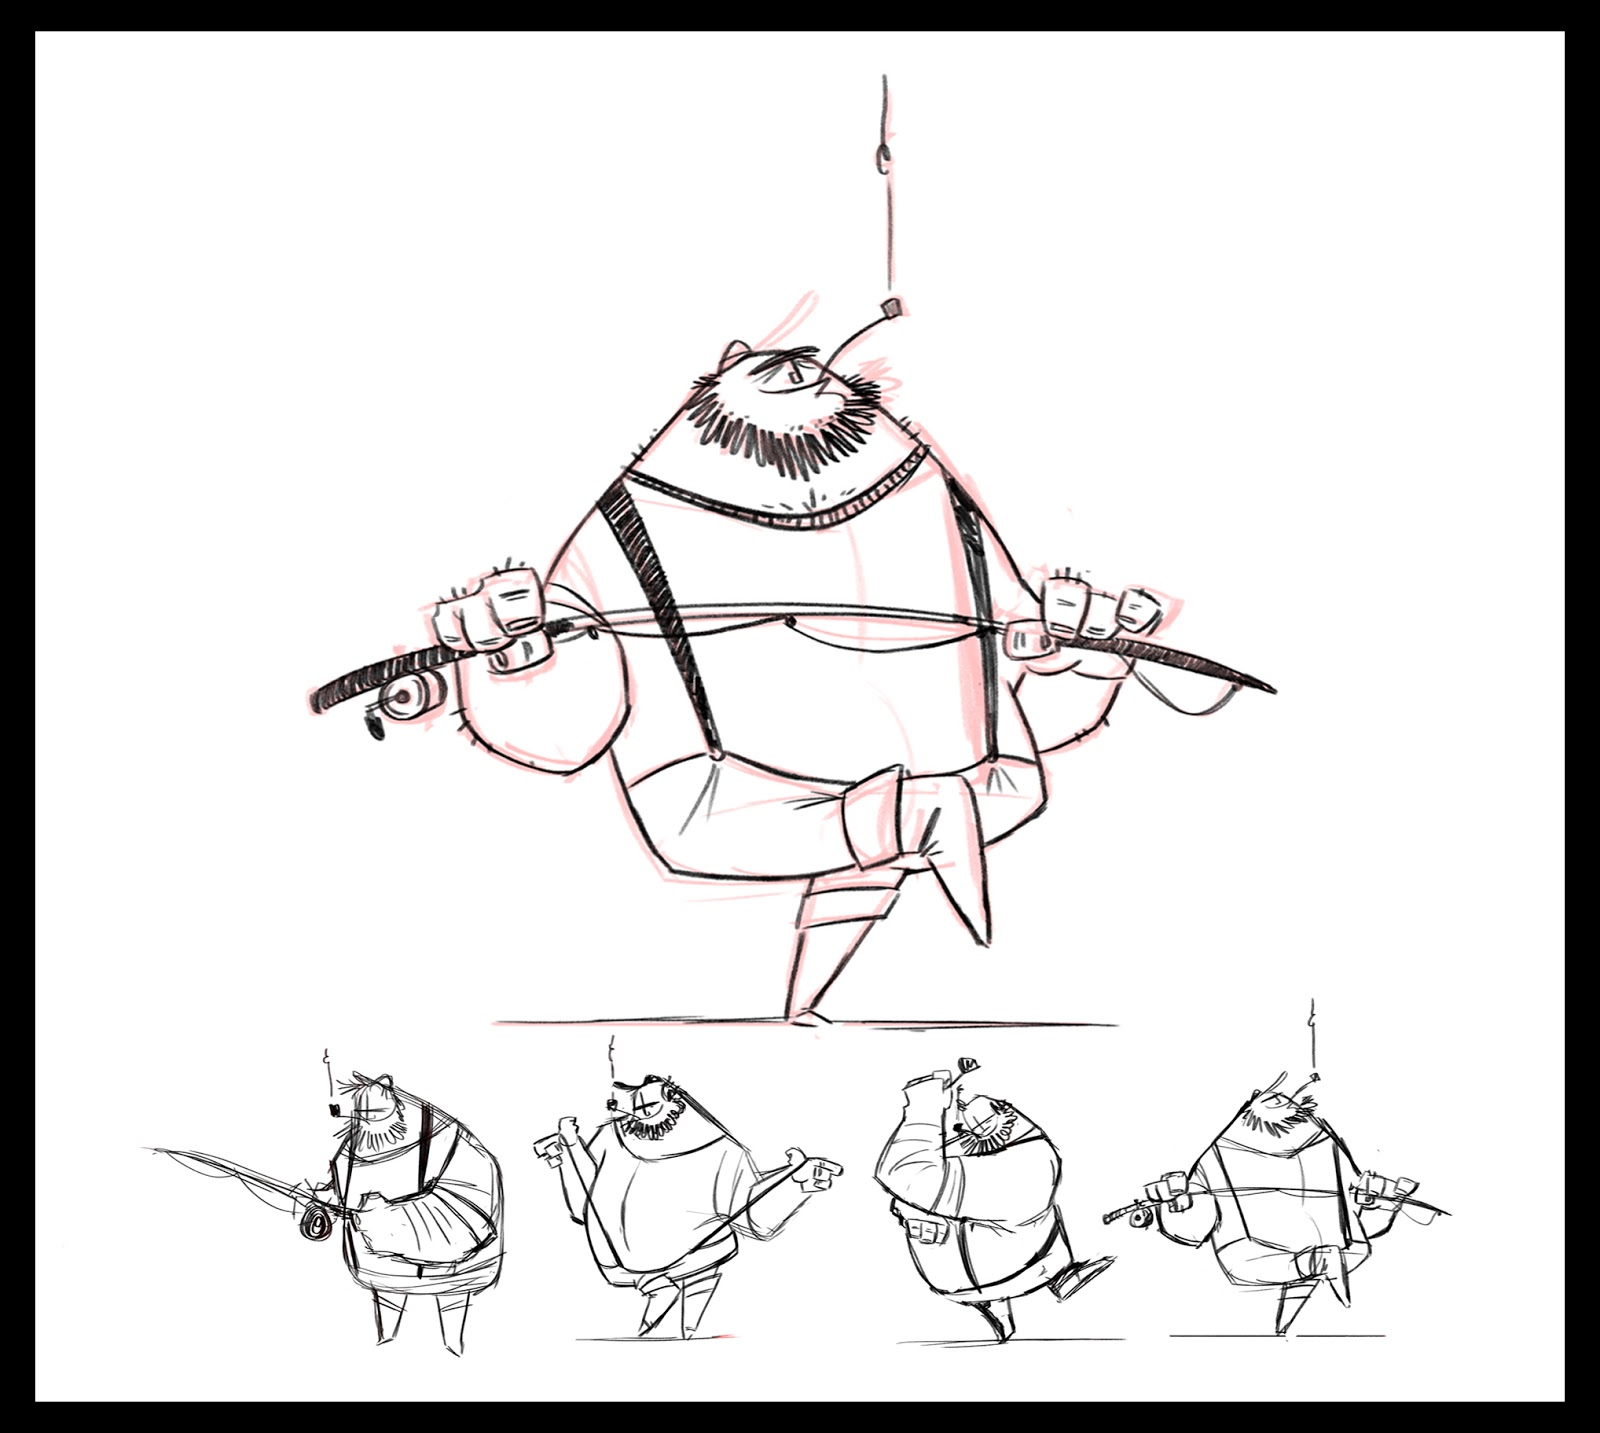 Character Design For Animation Class With Nate Wragg : Gillianimation nate wragg s character design for production